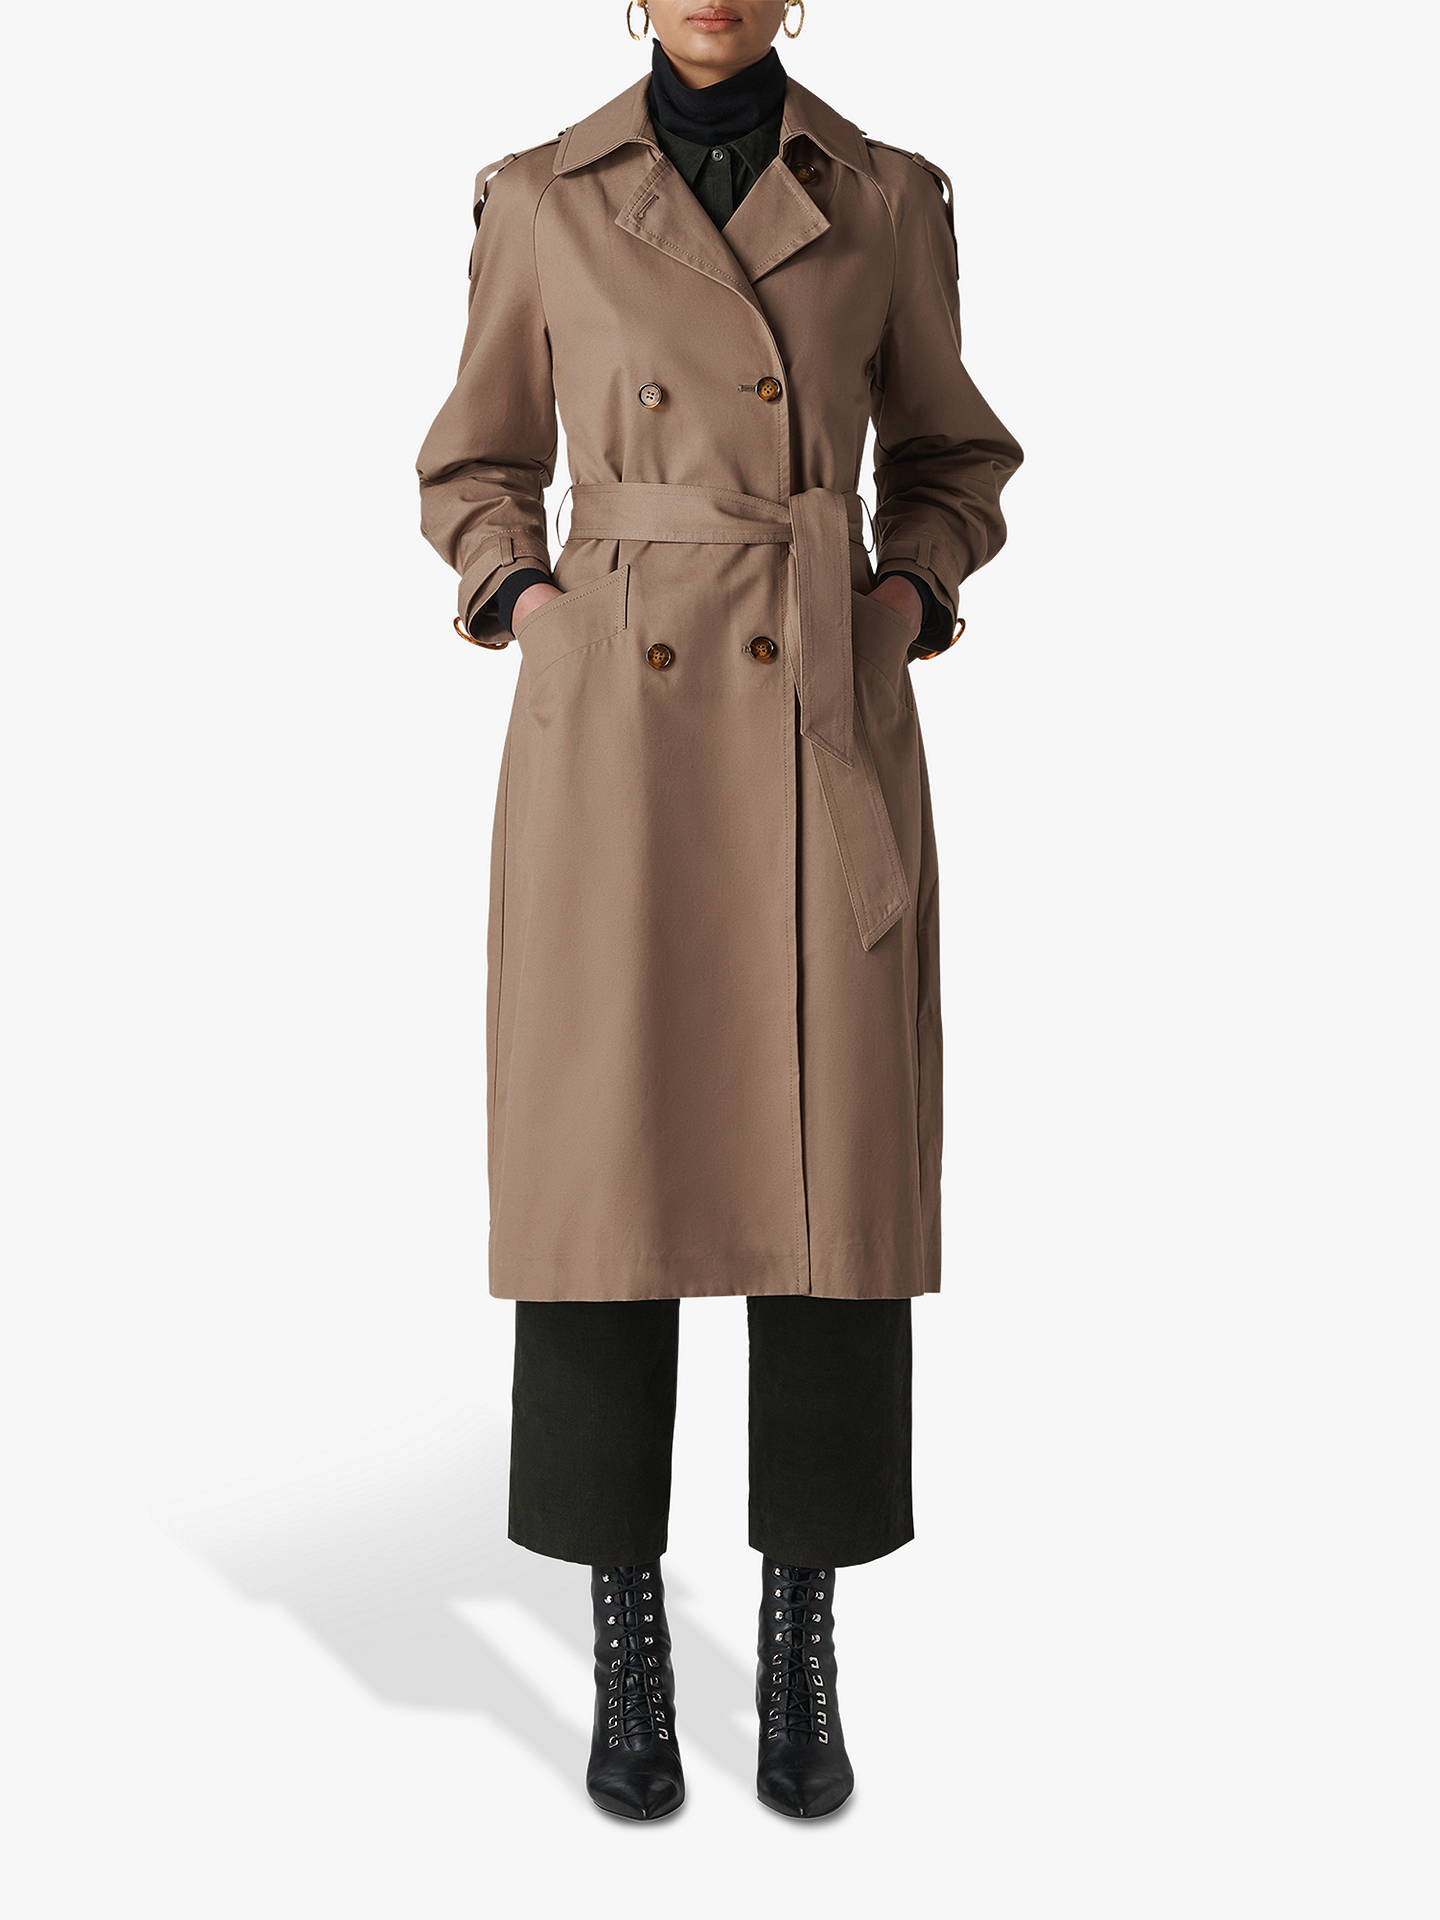 Buy Whistles Imra Balloon Sleeve Trench Coat, Beige, 6 Online at johnlewis.com